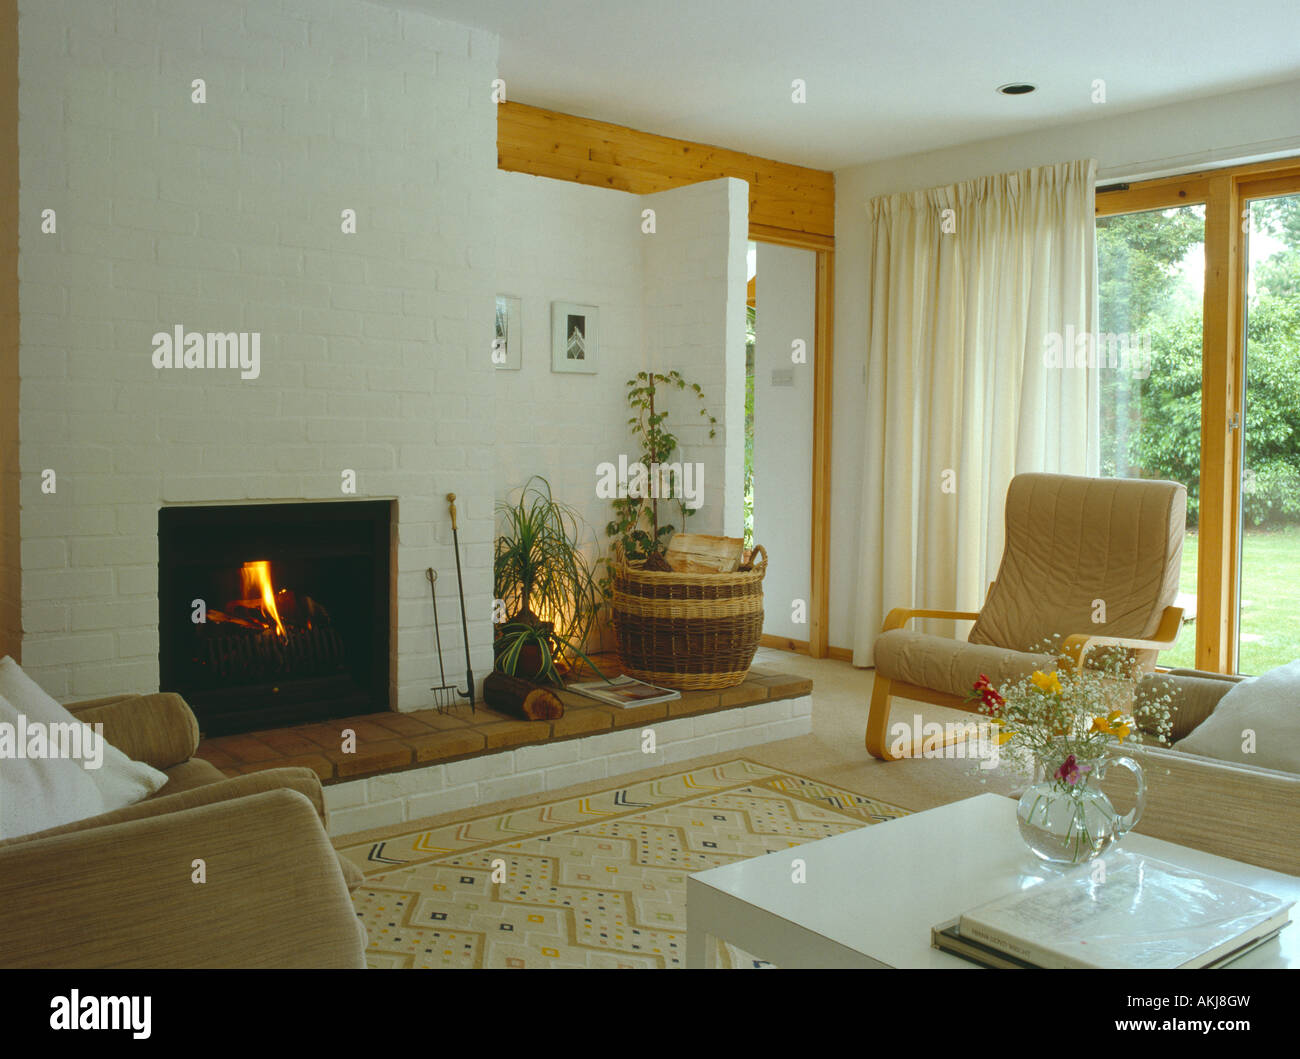 Lighted Fire And White Curtains In Modern Living Room With Stock Photo Alamy - Vorhang Skandinavisches Design